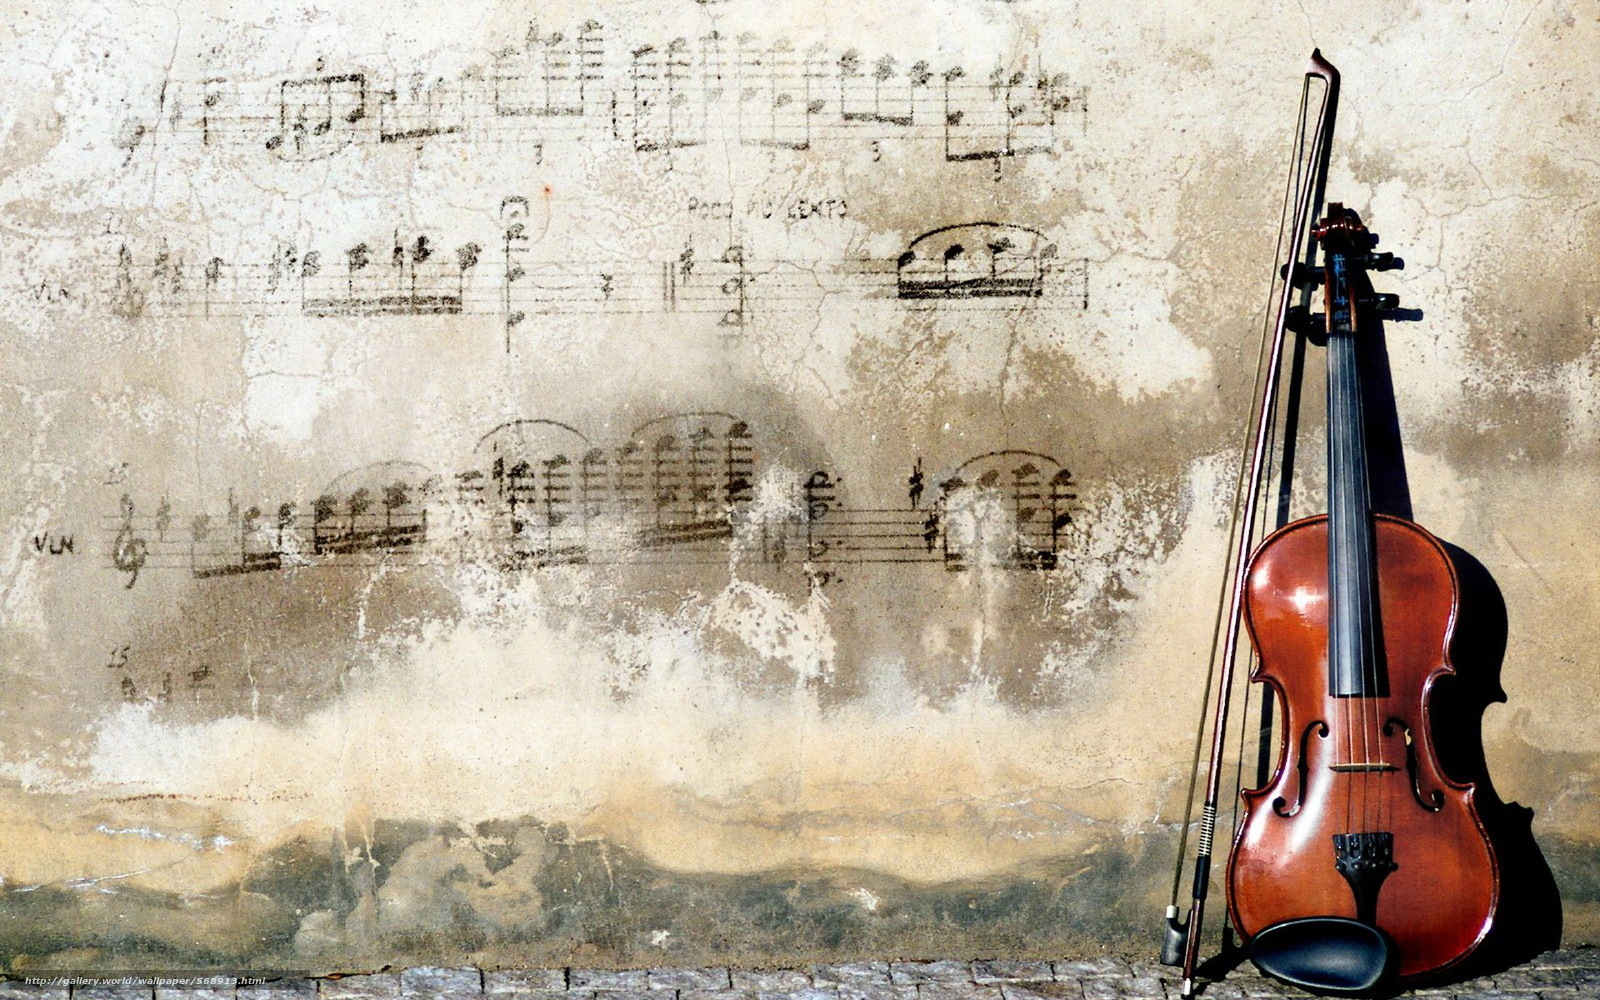 classic vs modern music Compare and contrast: classical vs modern music music wouldn't truly have a purpose with out its audiences in the 16th, 17th, 18th, and 19th century's music inspired writers, philosophers, aristocrats and other thinkers of the time.